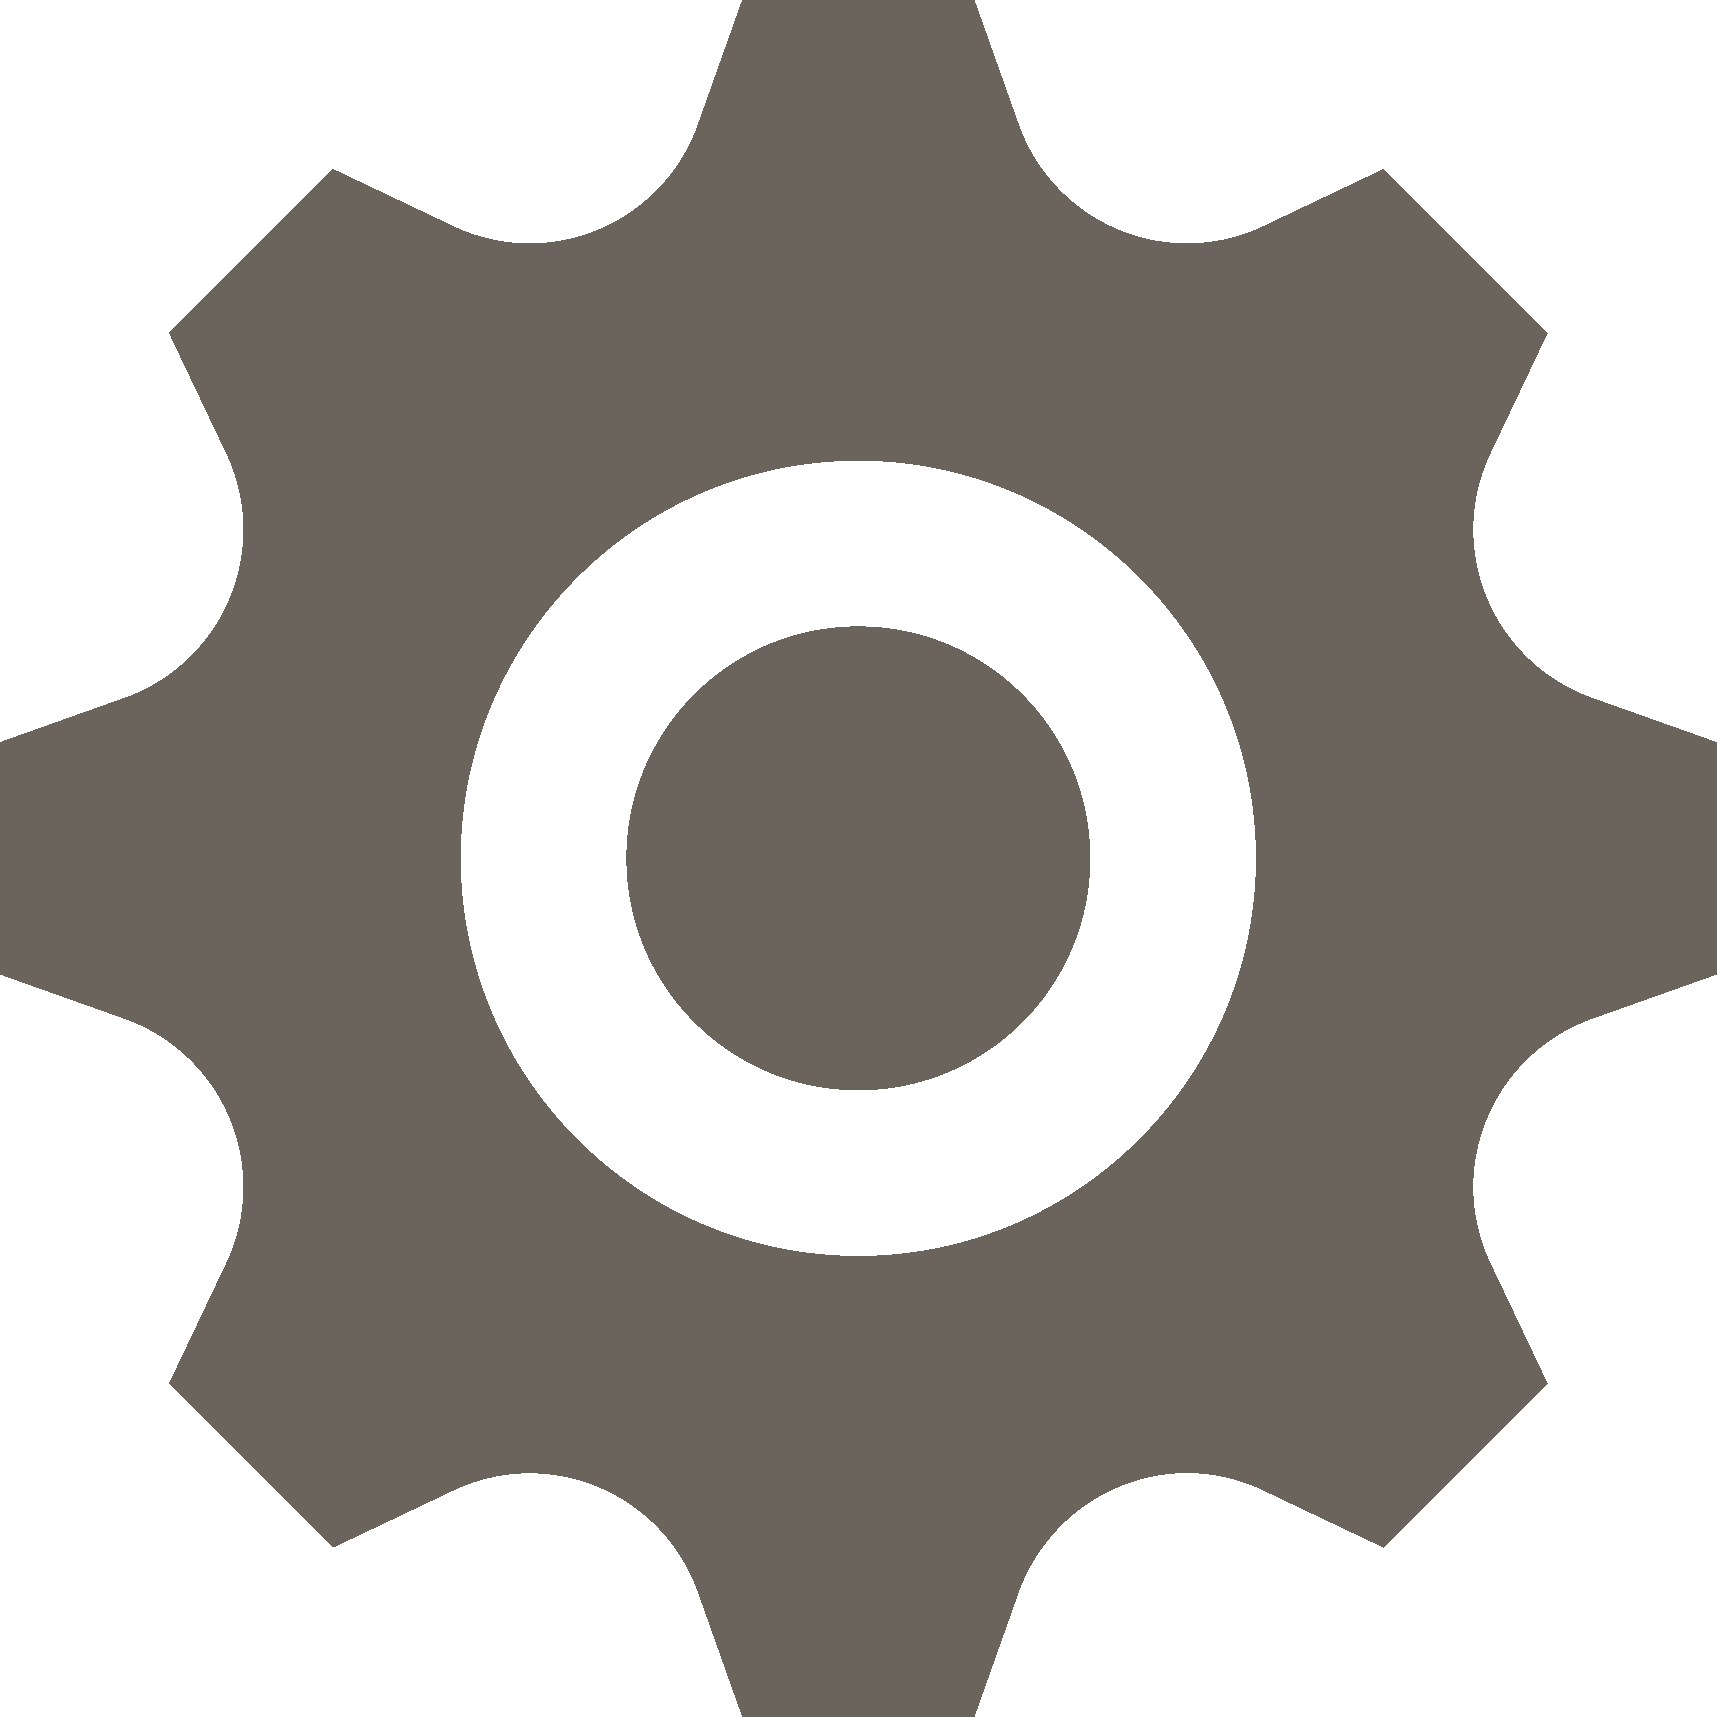 Gear Png Simple